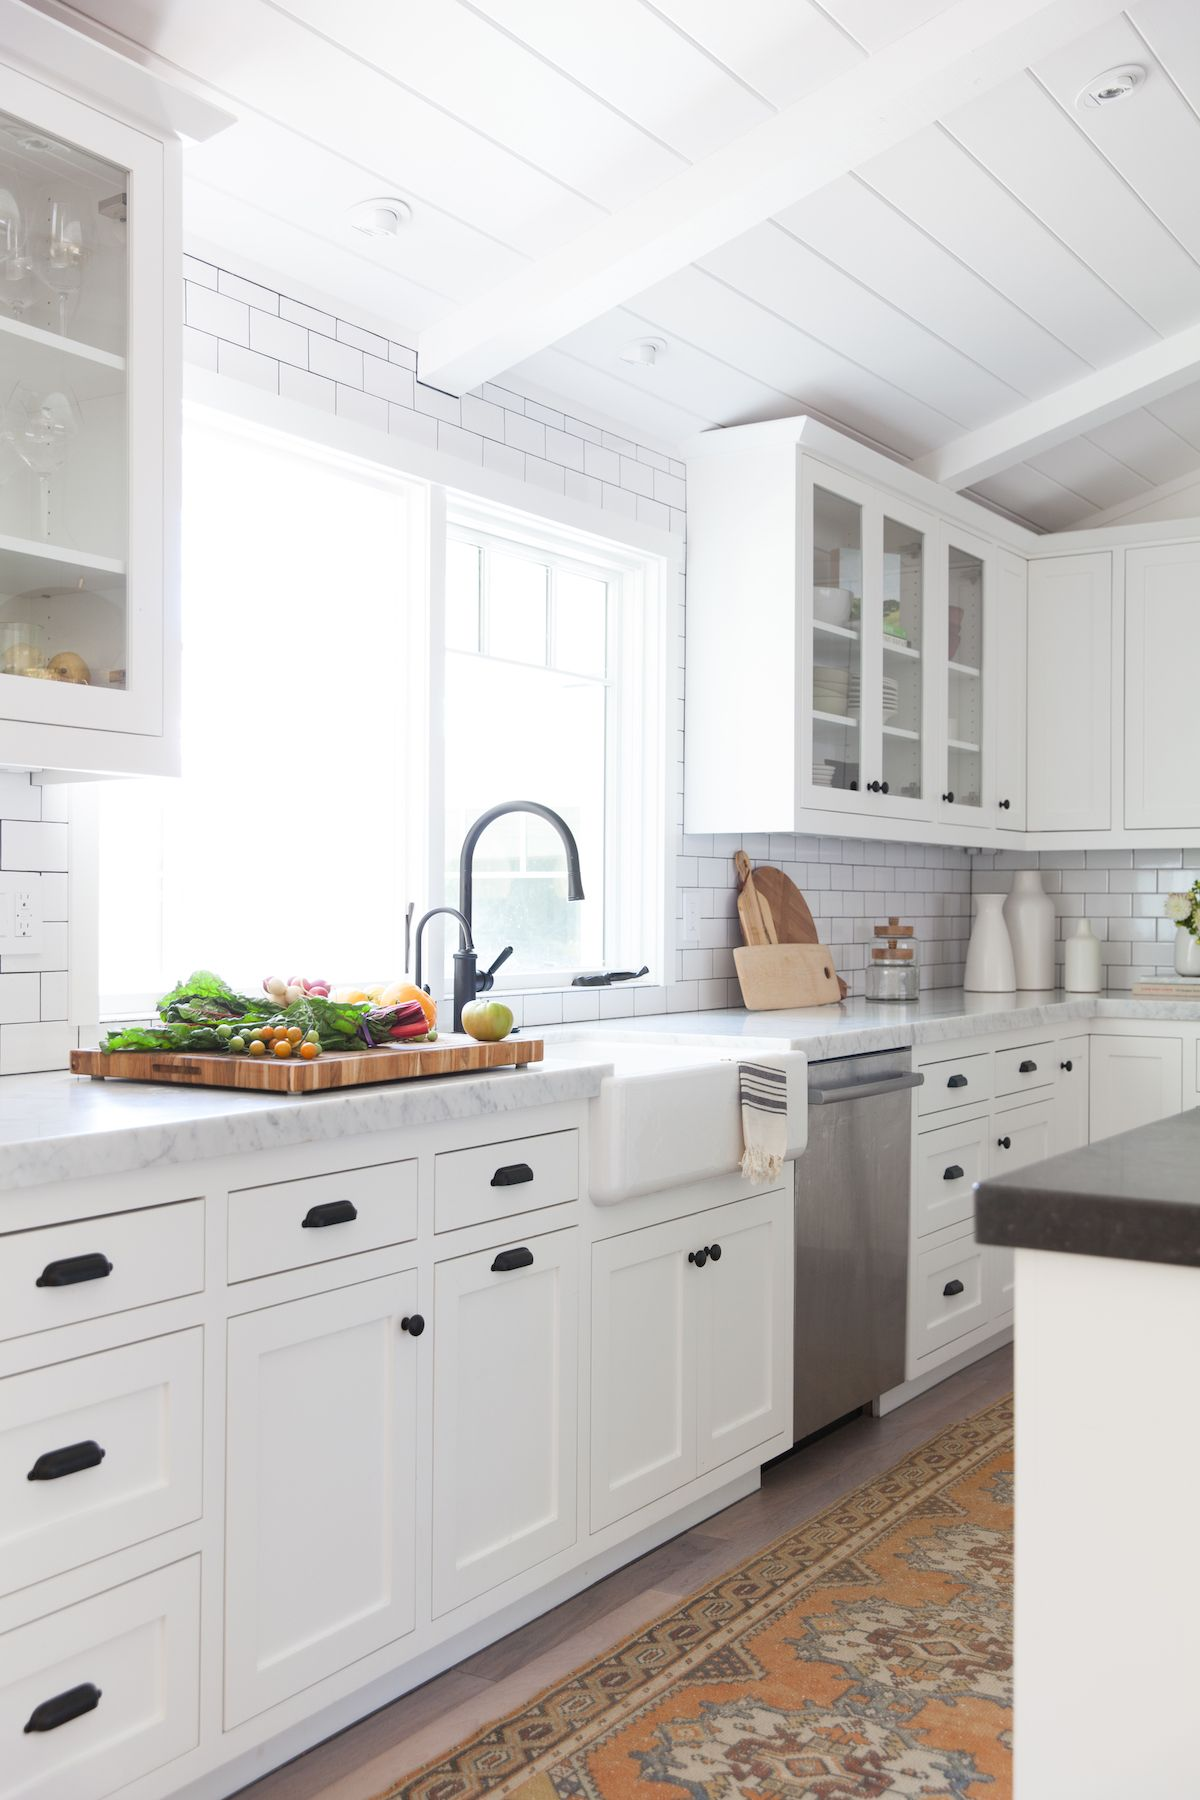 Classic Napa Farmhouse Inspired By The California Coast And Wine Country Kitchen Design New Kitchen Cabinets Kitchen Renovation